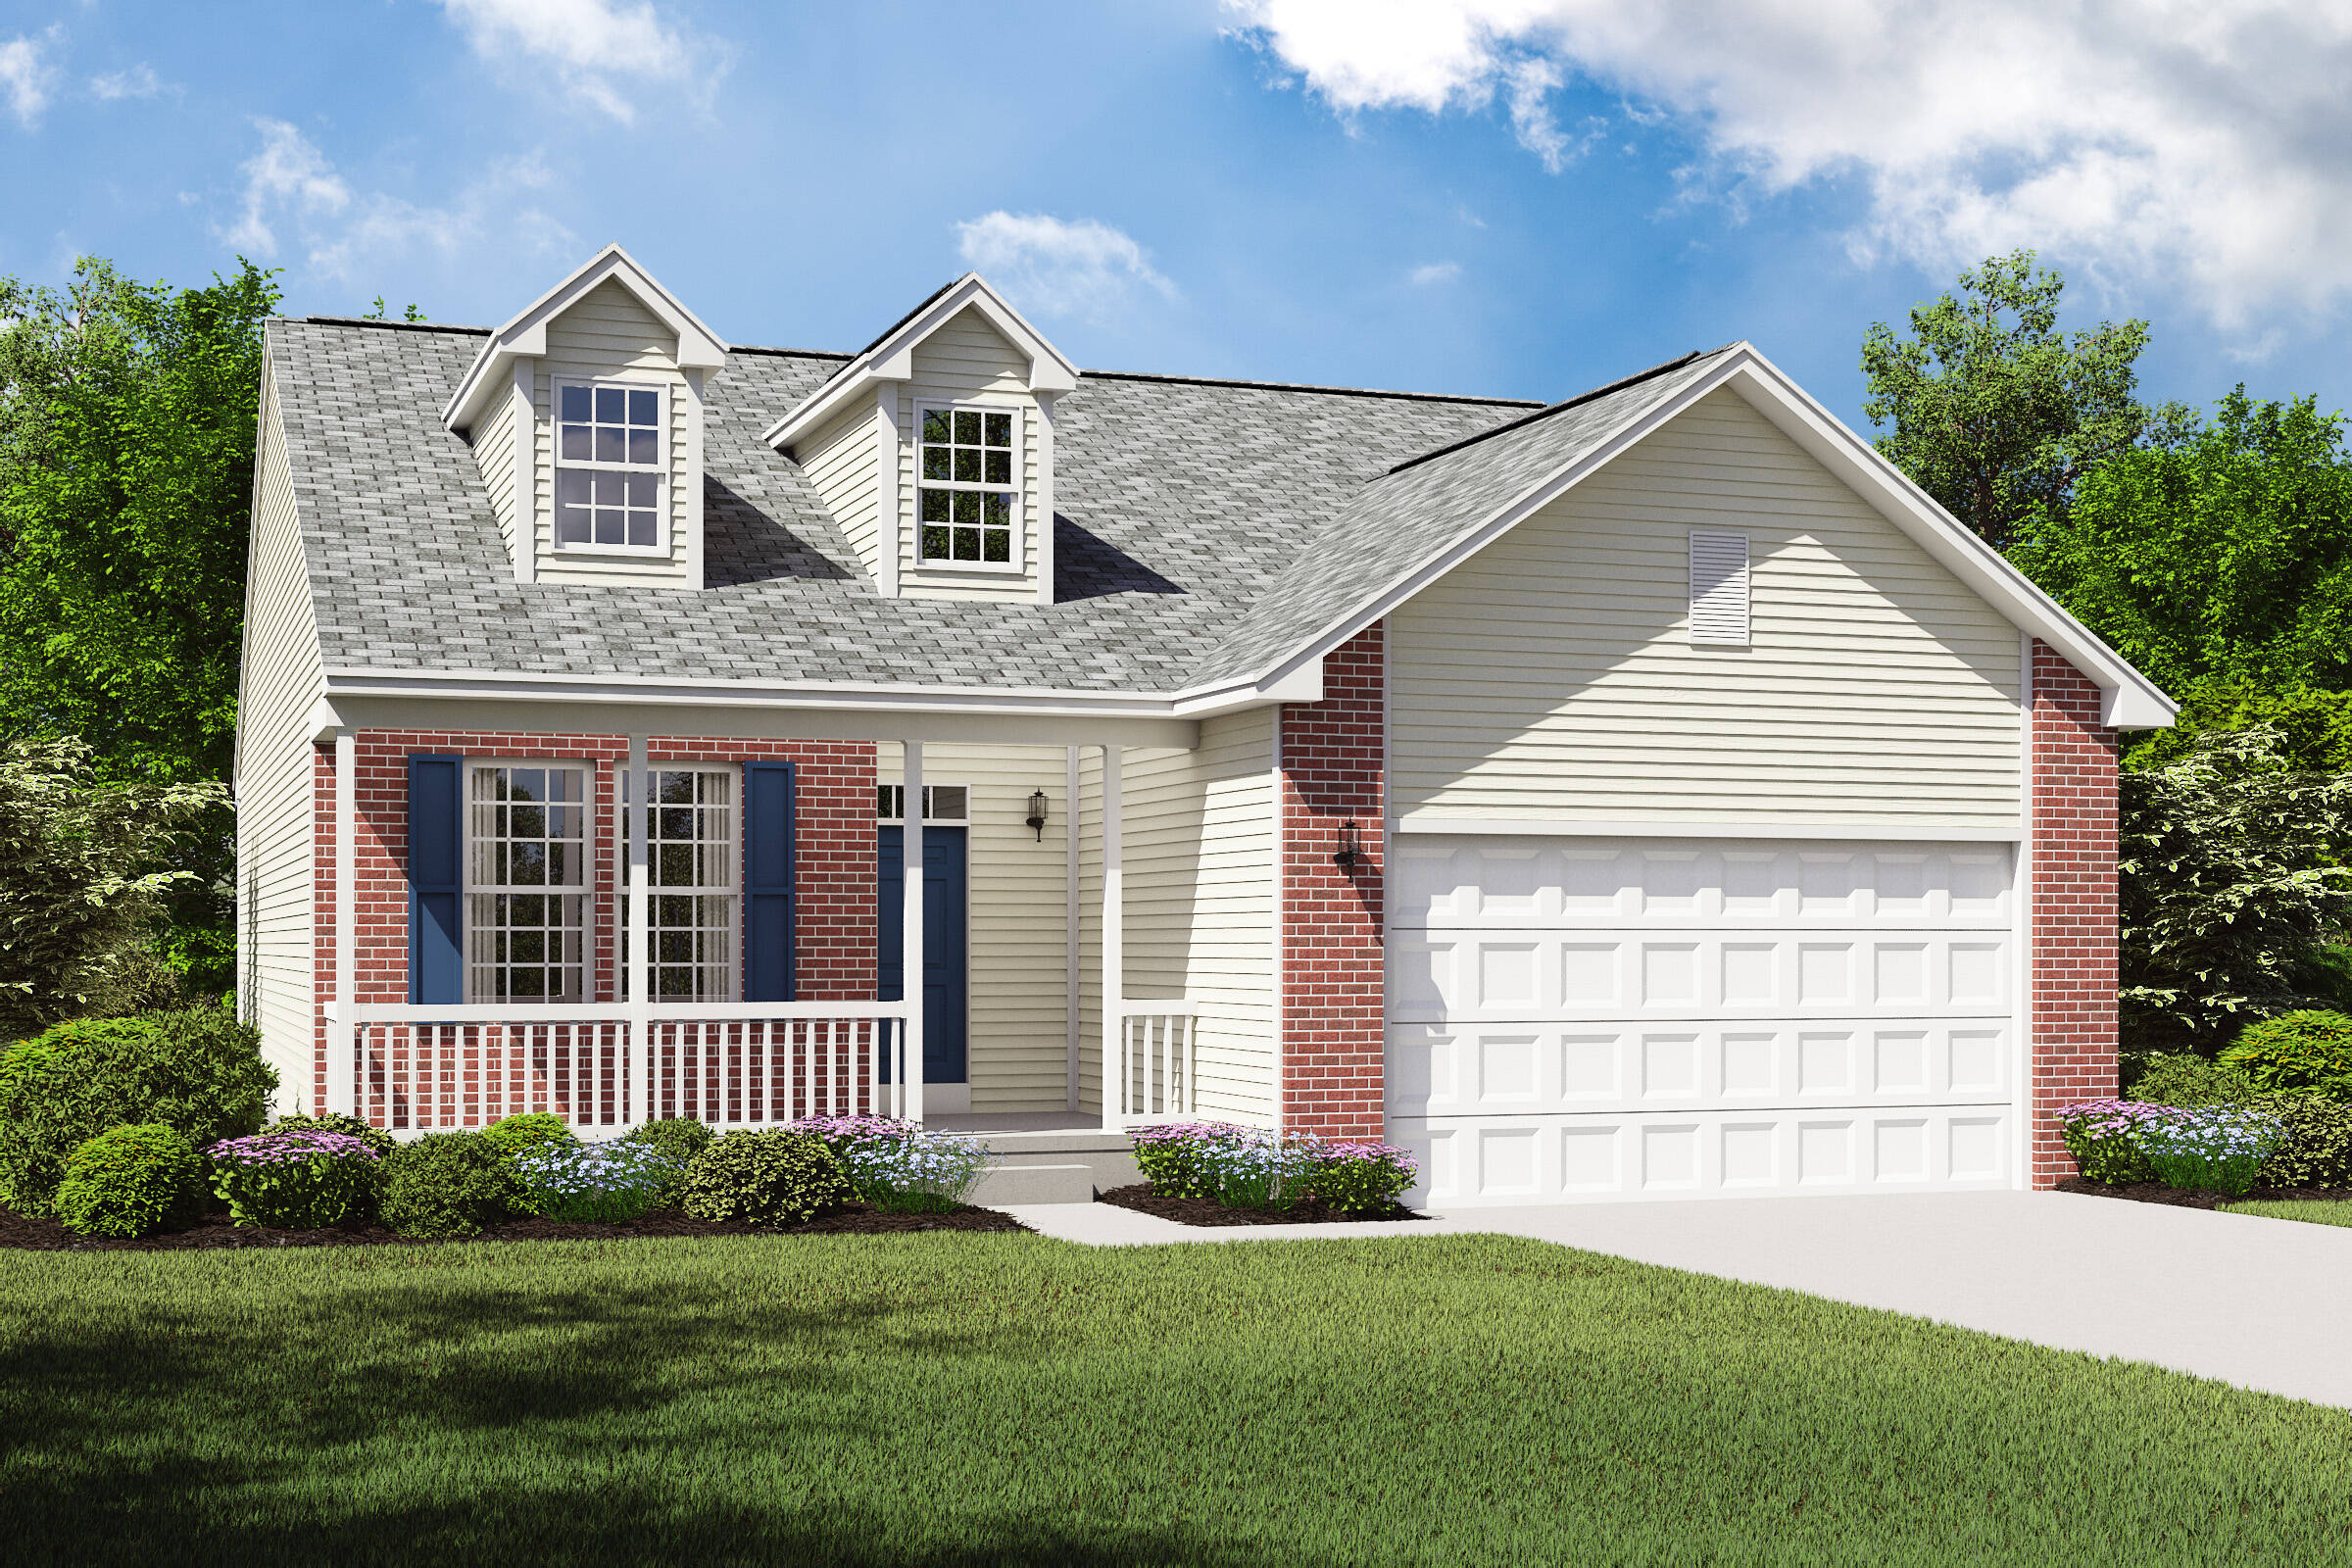 pinacle b cleveland new home ranch design with brick exterior